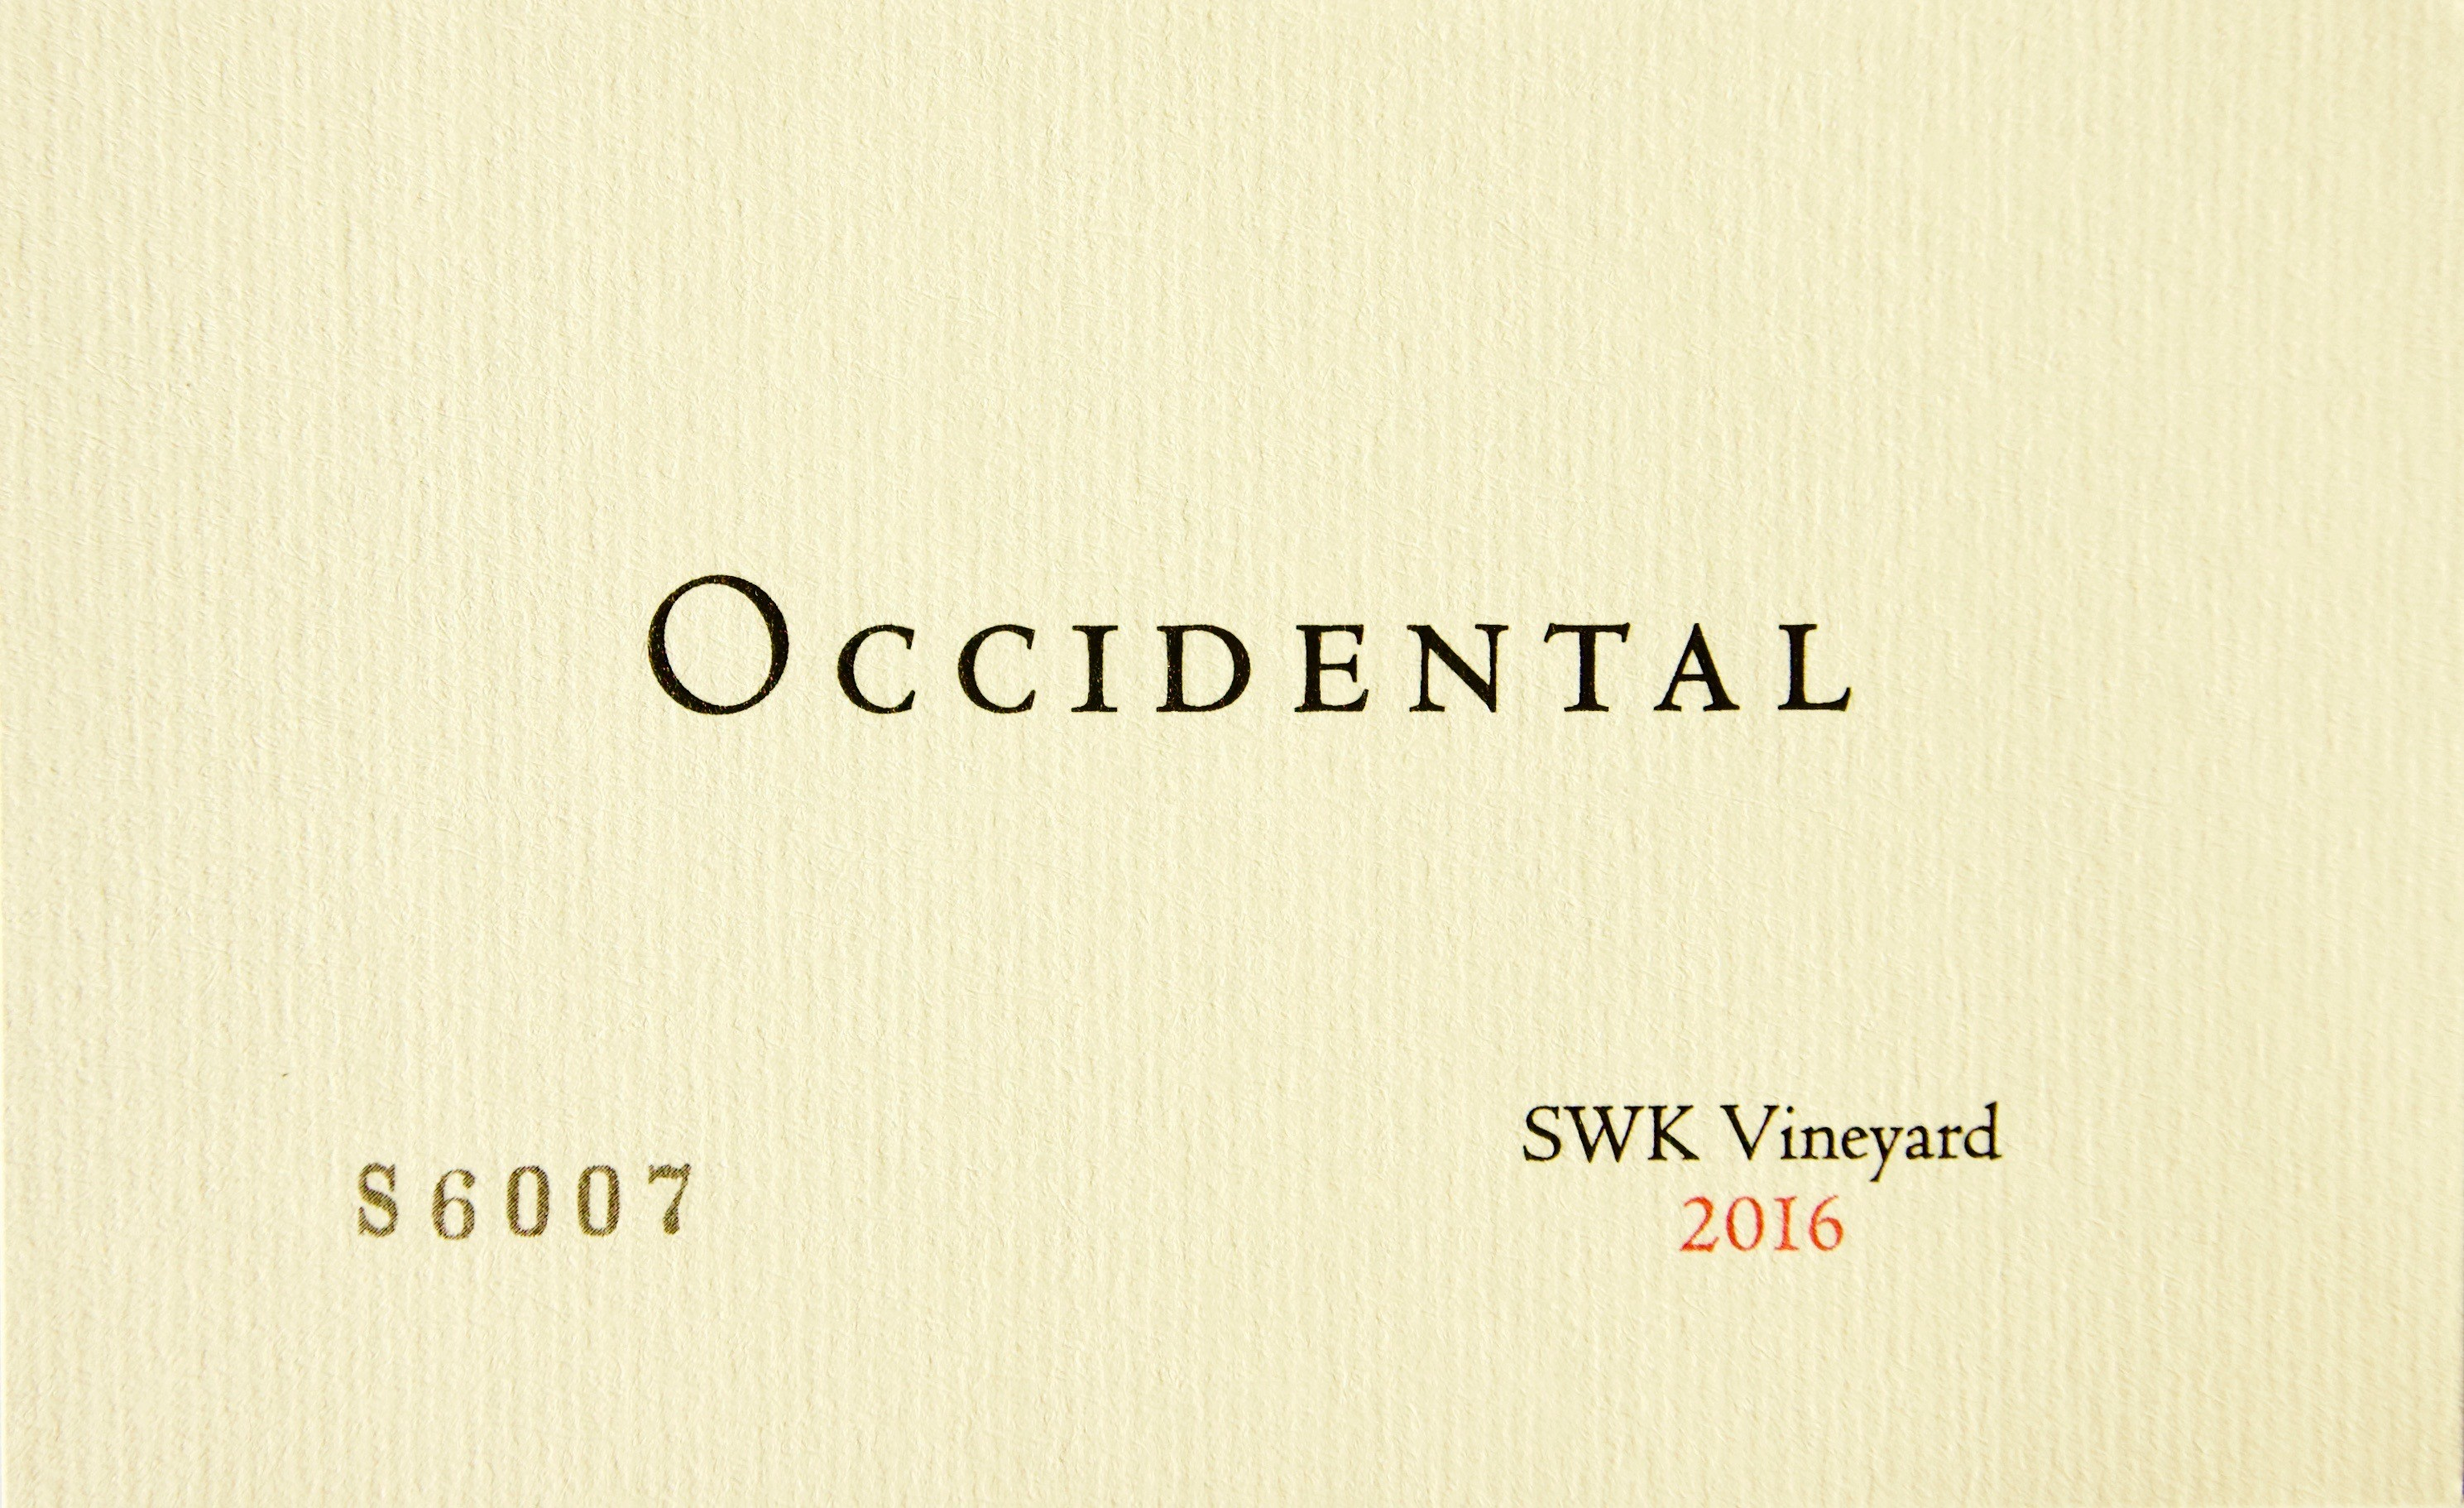 2016 Occidental Pinot Noir SWK Vineyard